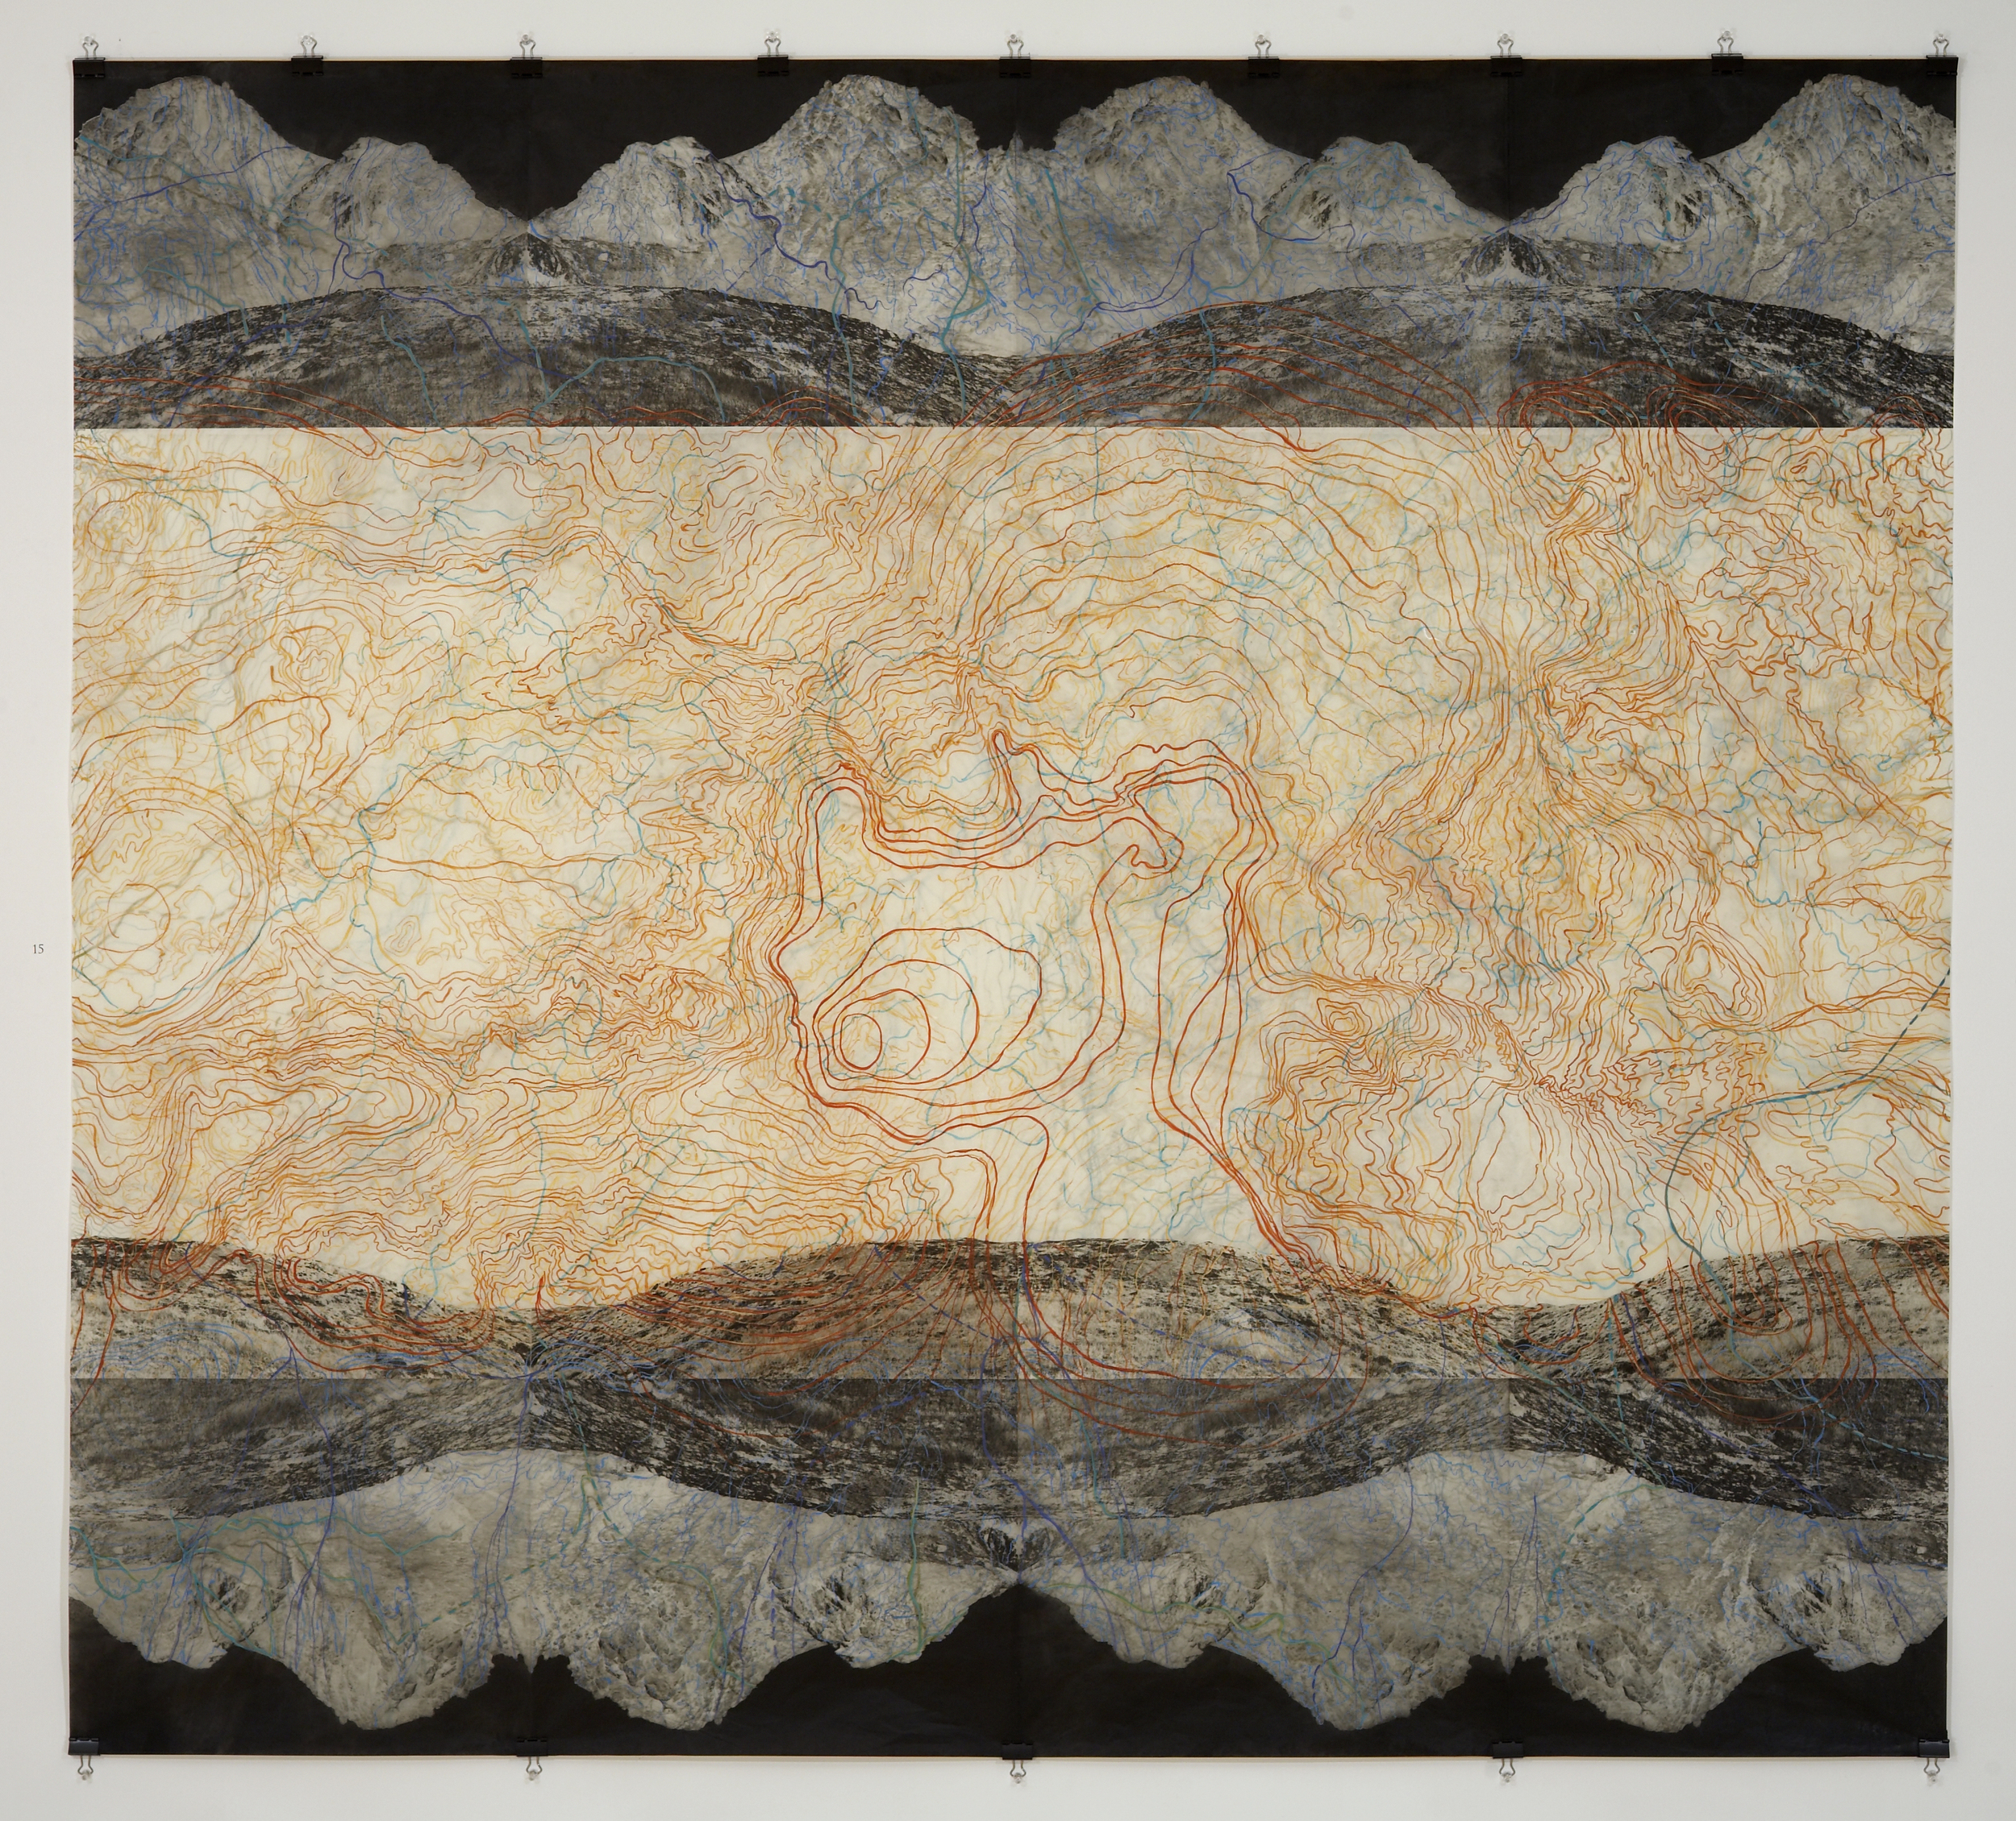 """Geothermal TopographyIII, 2007   Photogravure on kozo shi, digital pigment print, oil paint and wax in layers   72"""" X 79"""""""